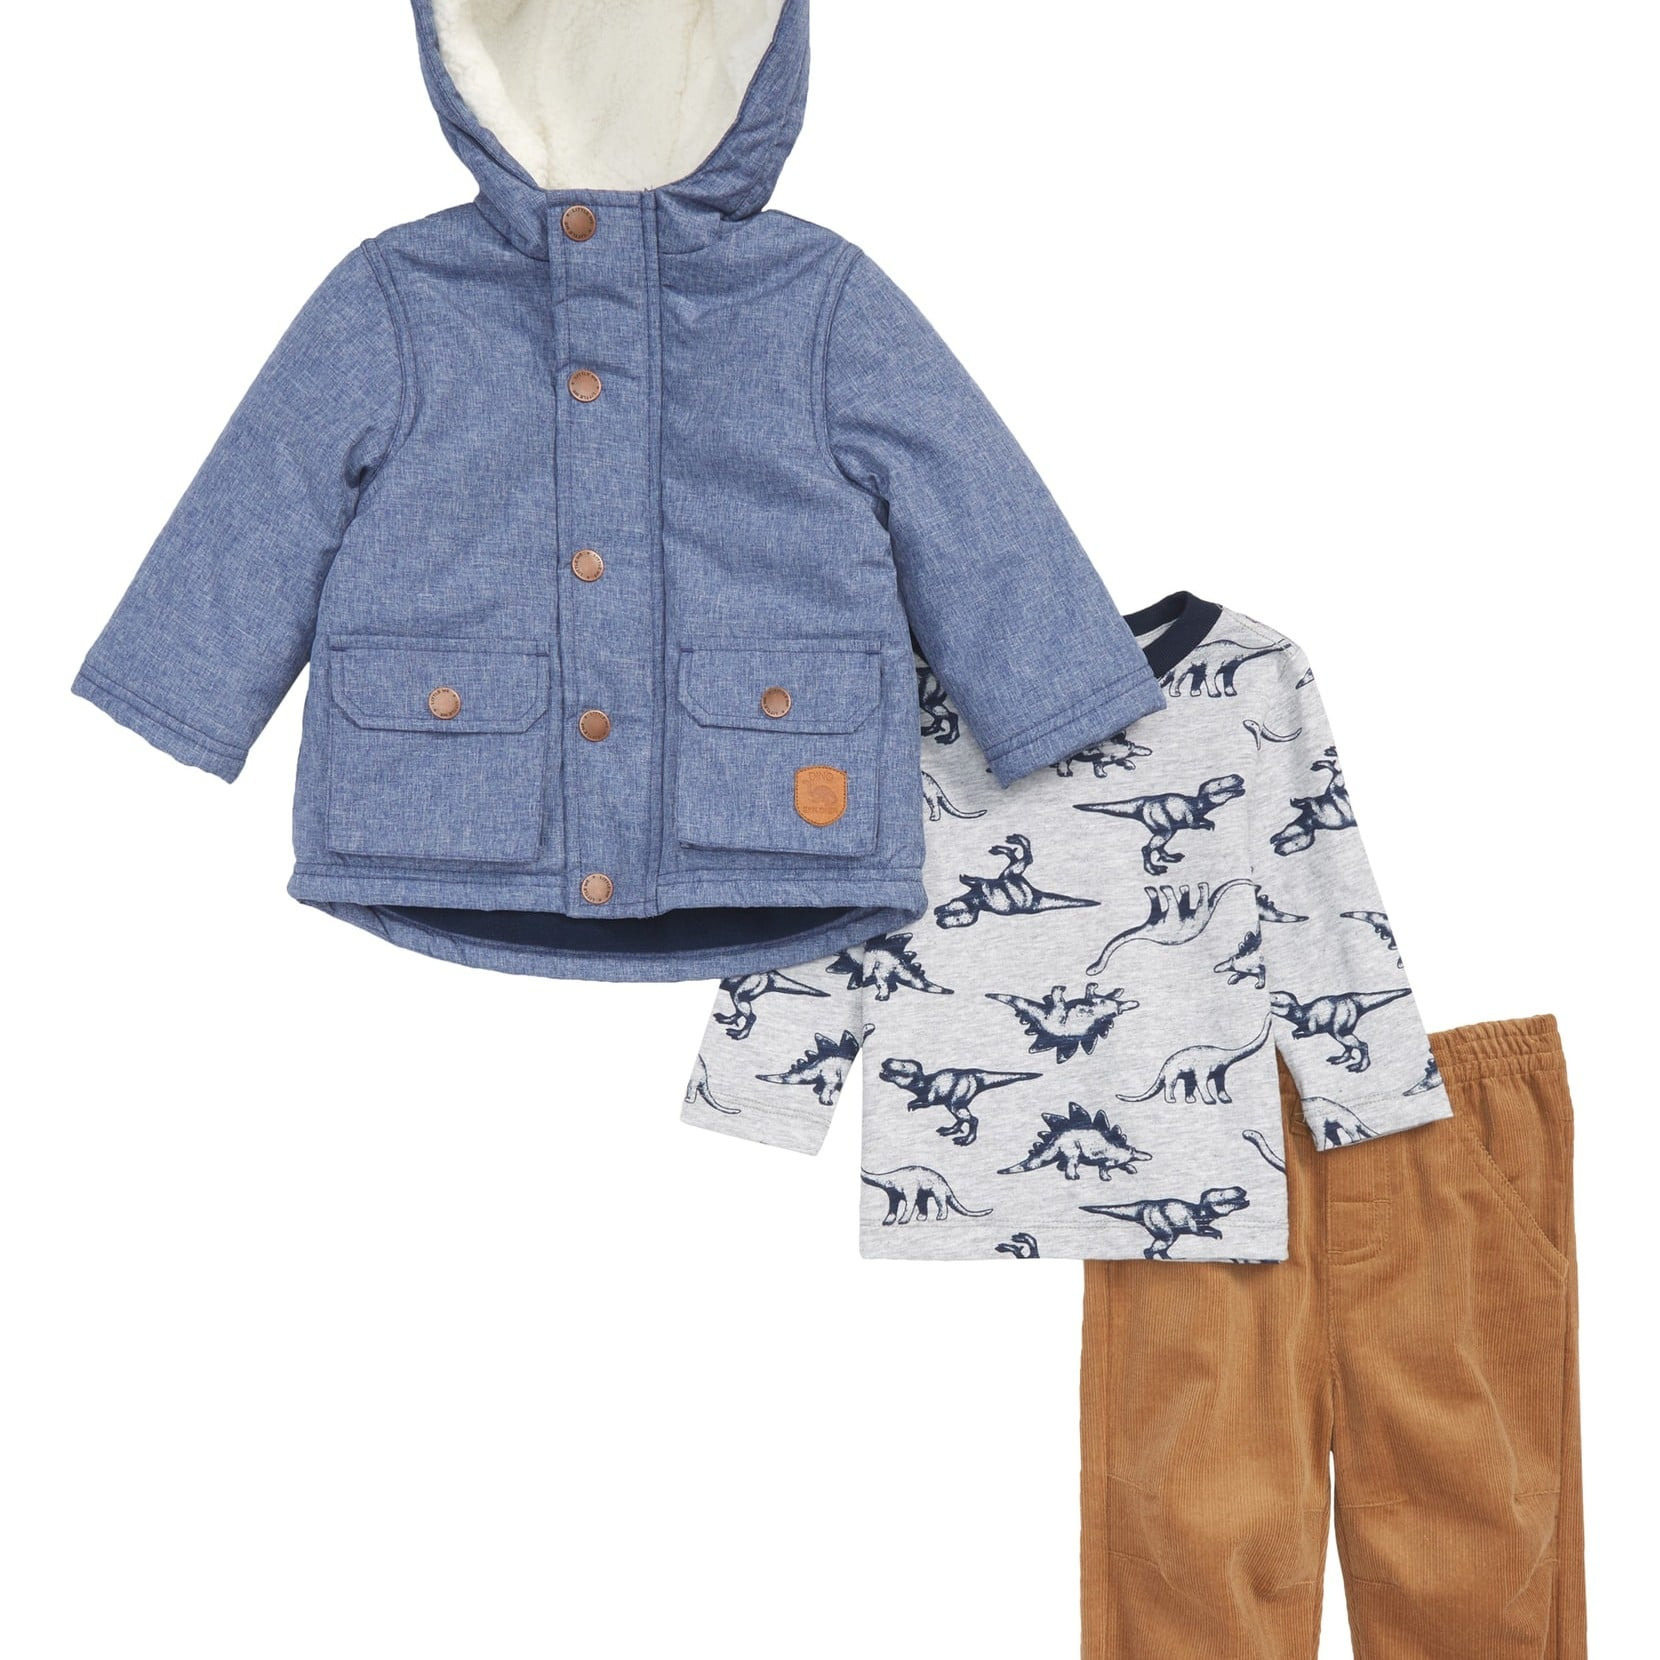 68ead27b9db0 Baby Clothes at Nordstrom Anniversary Sale 2018